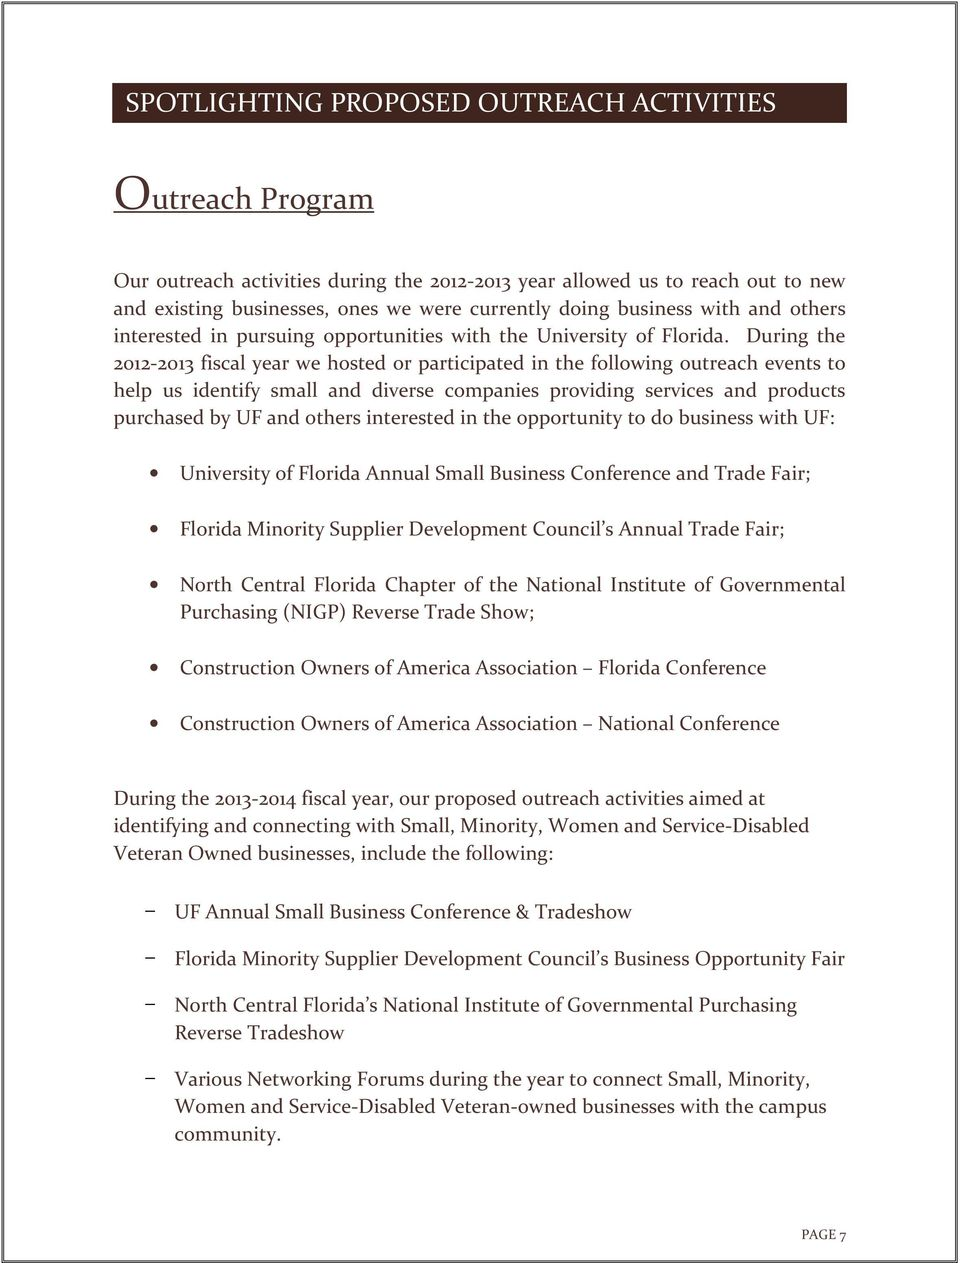 During the 2012-2013 fiscal year we hosted or participated in the following outreach events to help us identify small and diverse companies providing services and products purchased by UF and others